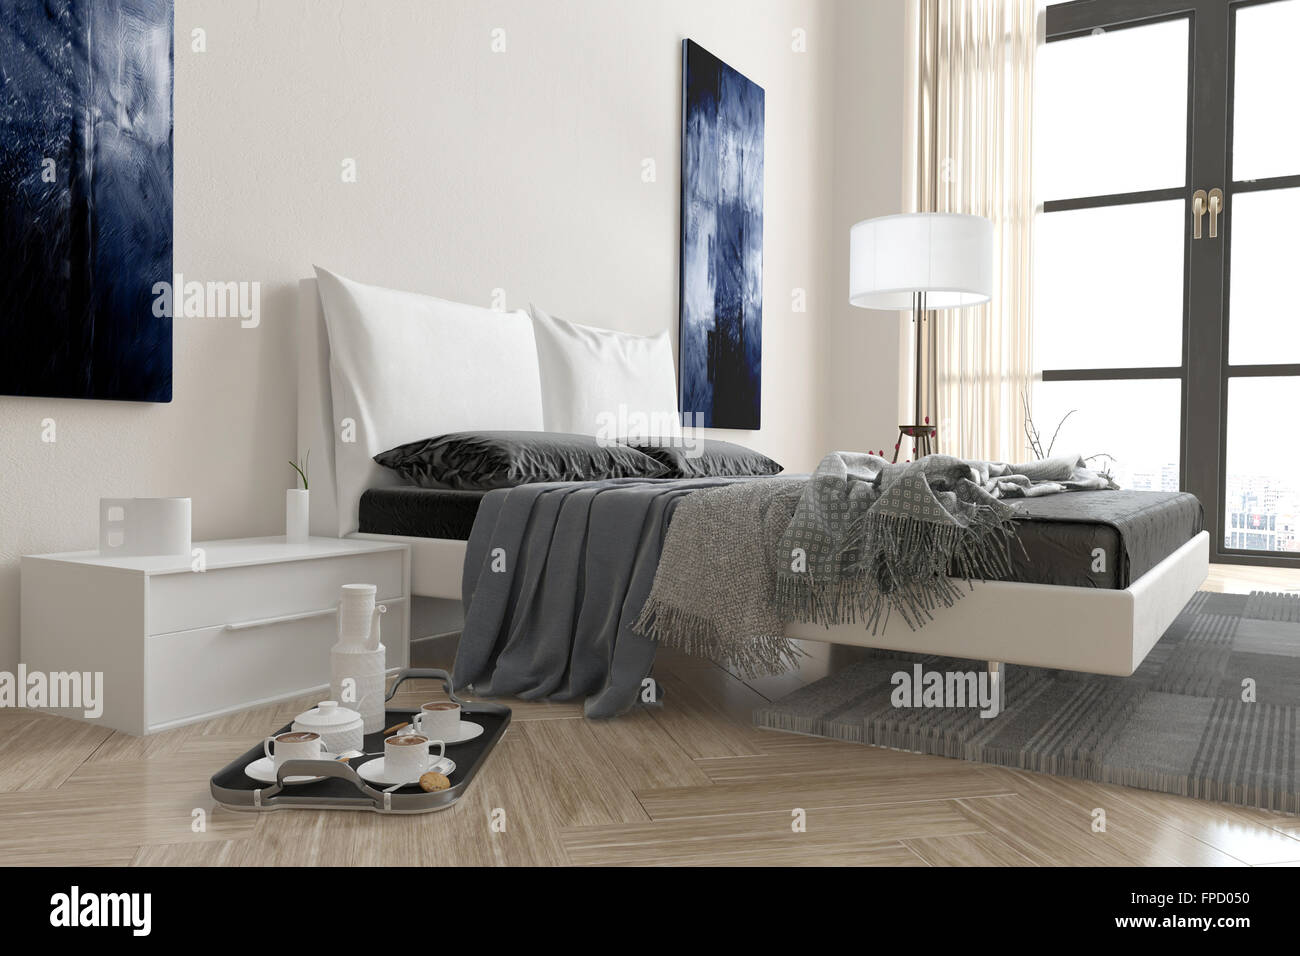 Modern bedroom interior with double divan bed covered in rugs and ...